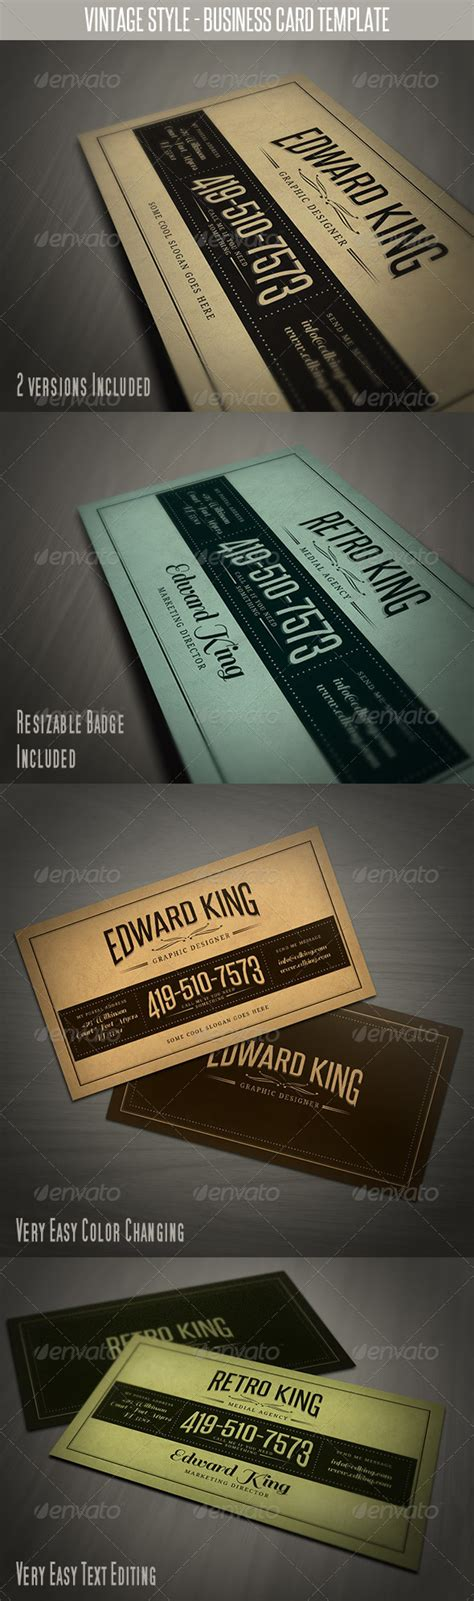 retro style business card template print template graphicriver vintage style business card